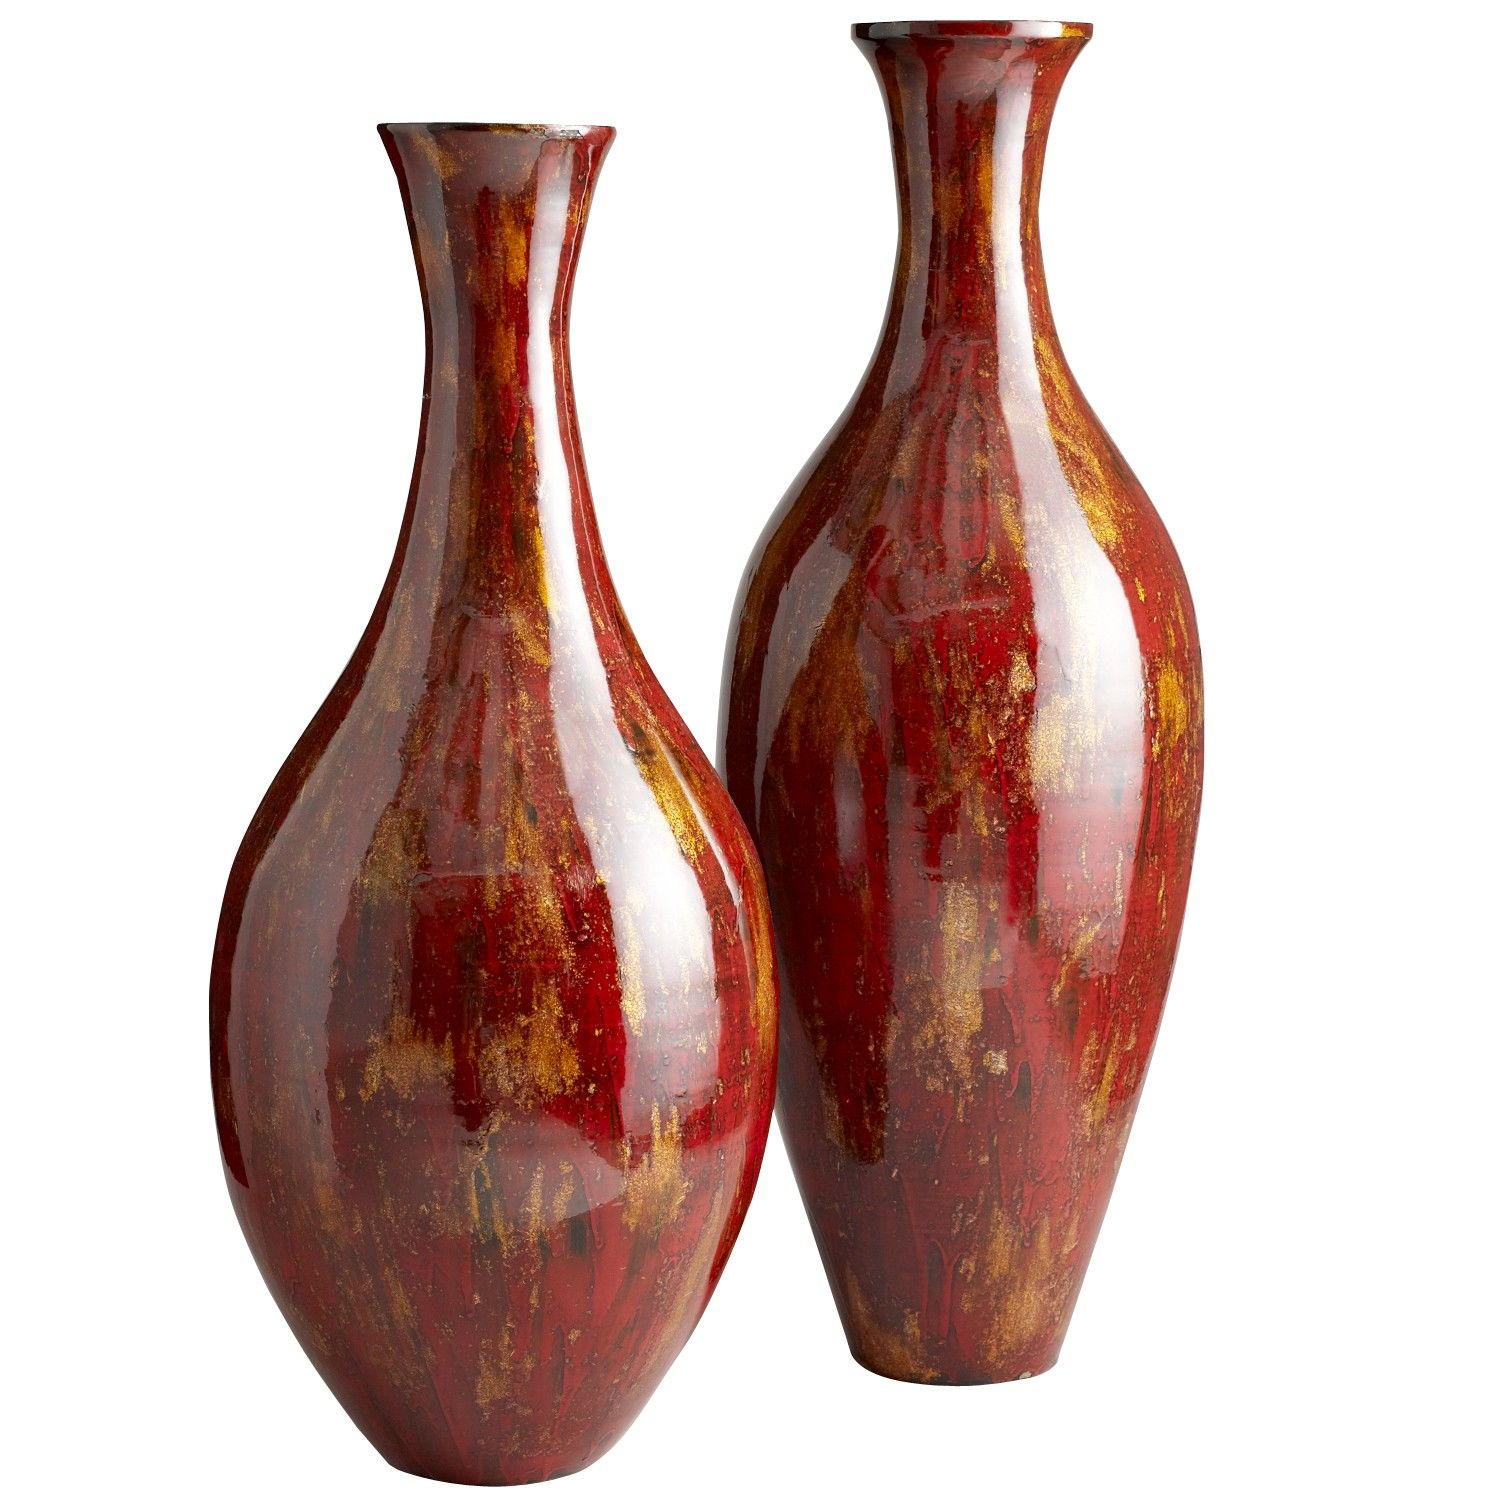 Tall Vases Cheap | Pier 1 Floor Vase | Floor Vase